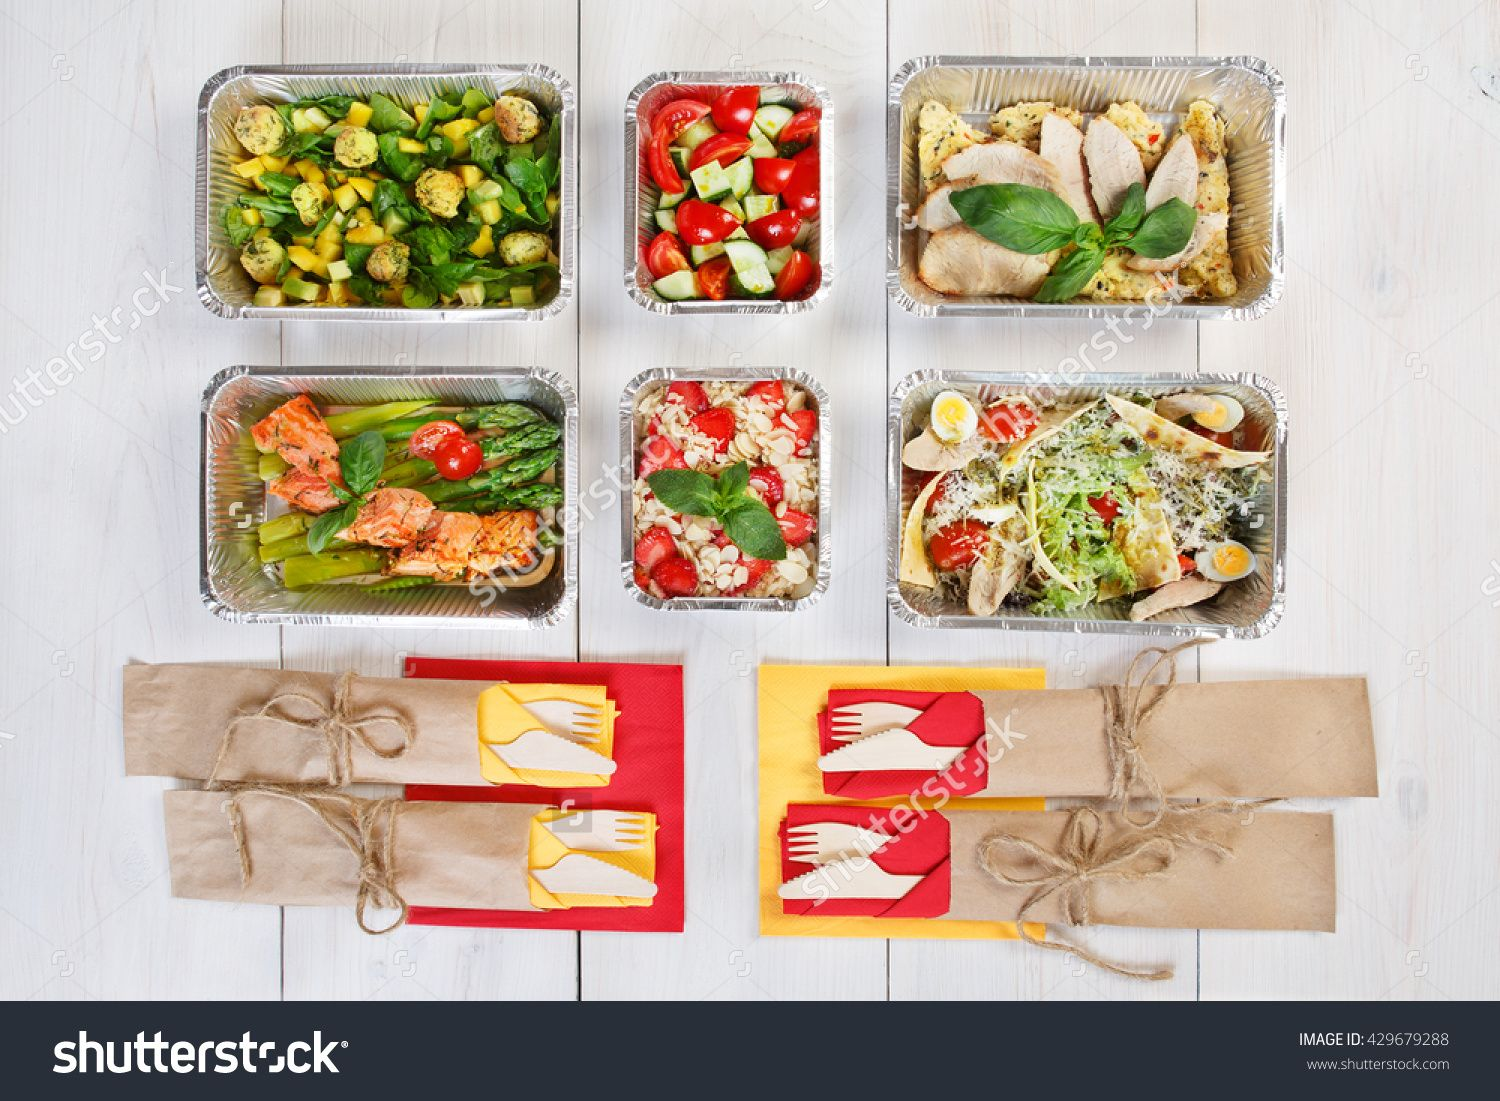 Healthy Food Delivery Take Away Of Natural Organic Low Carb Diet